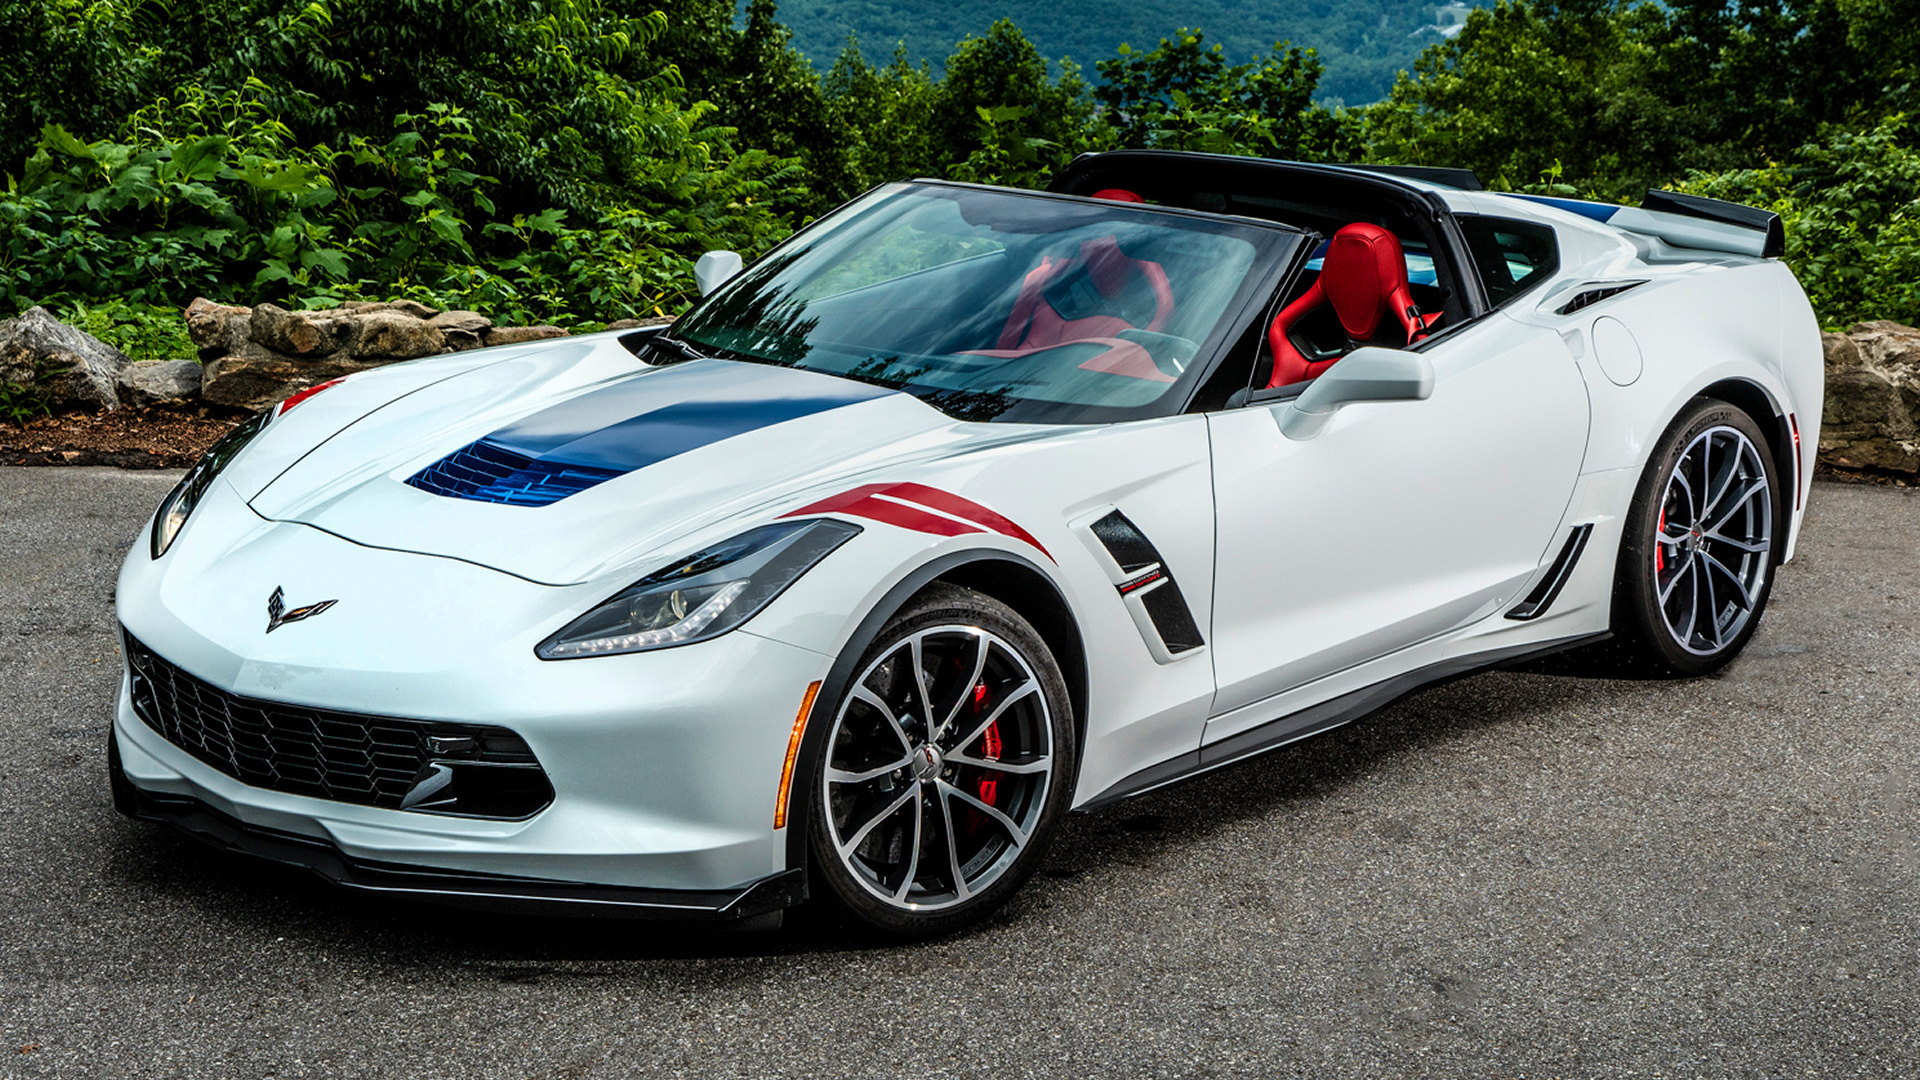 Corvette grand sport 2017 wallpapers and hd images car pixel - Chevrolet Corvette Grand Sport 2017 Wallpapers And Hd